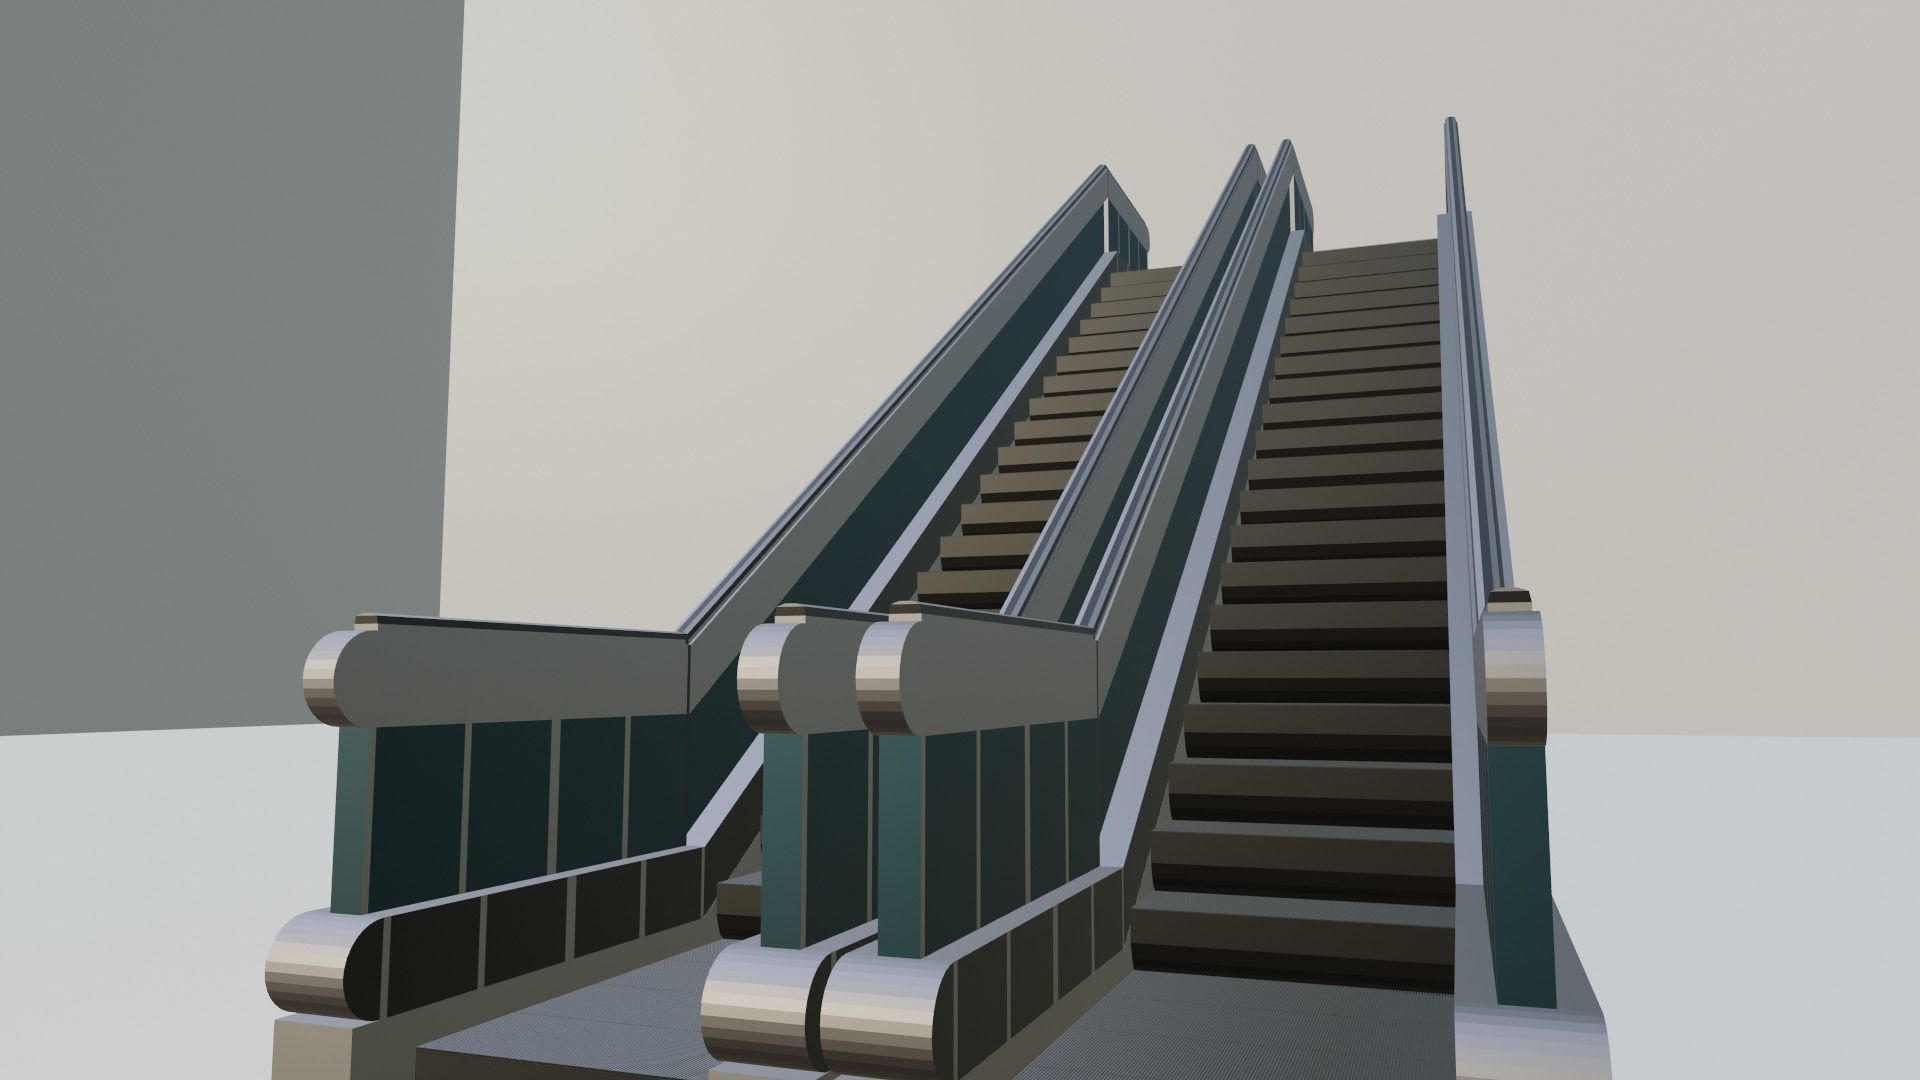 DUAL Escalator 3D model for game developing and video